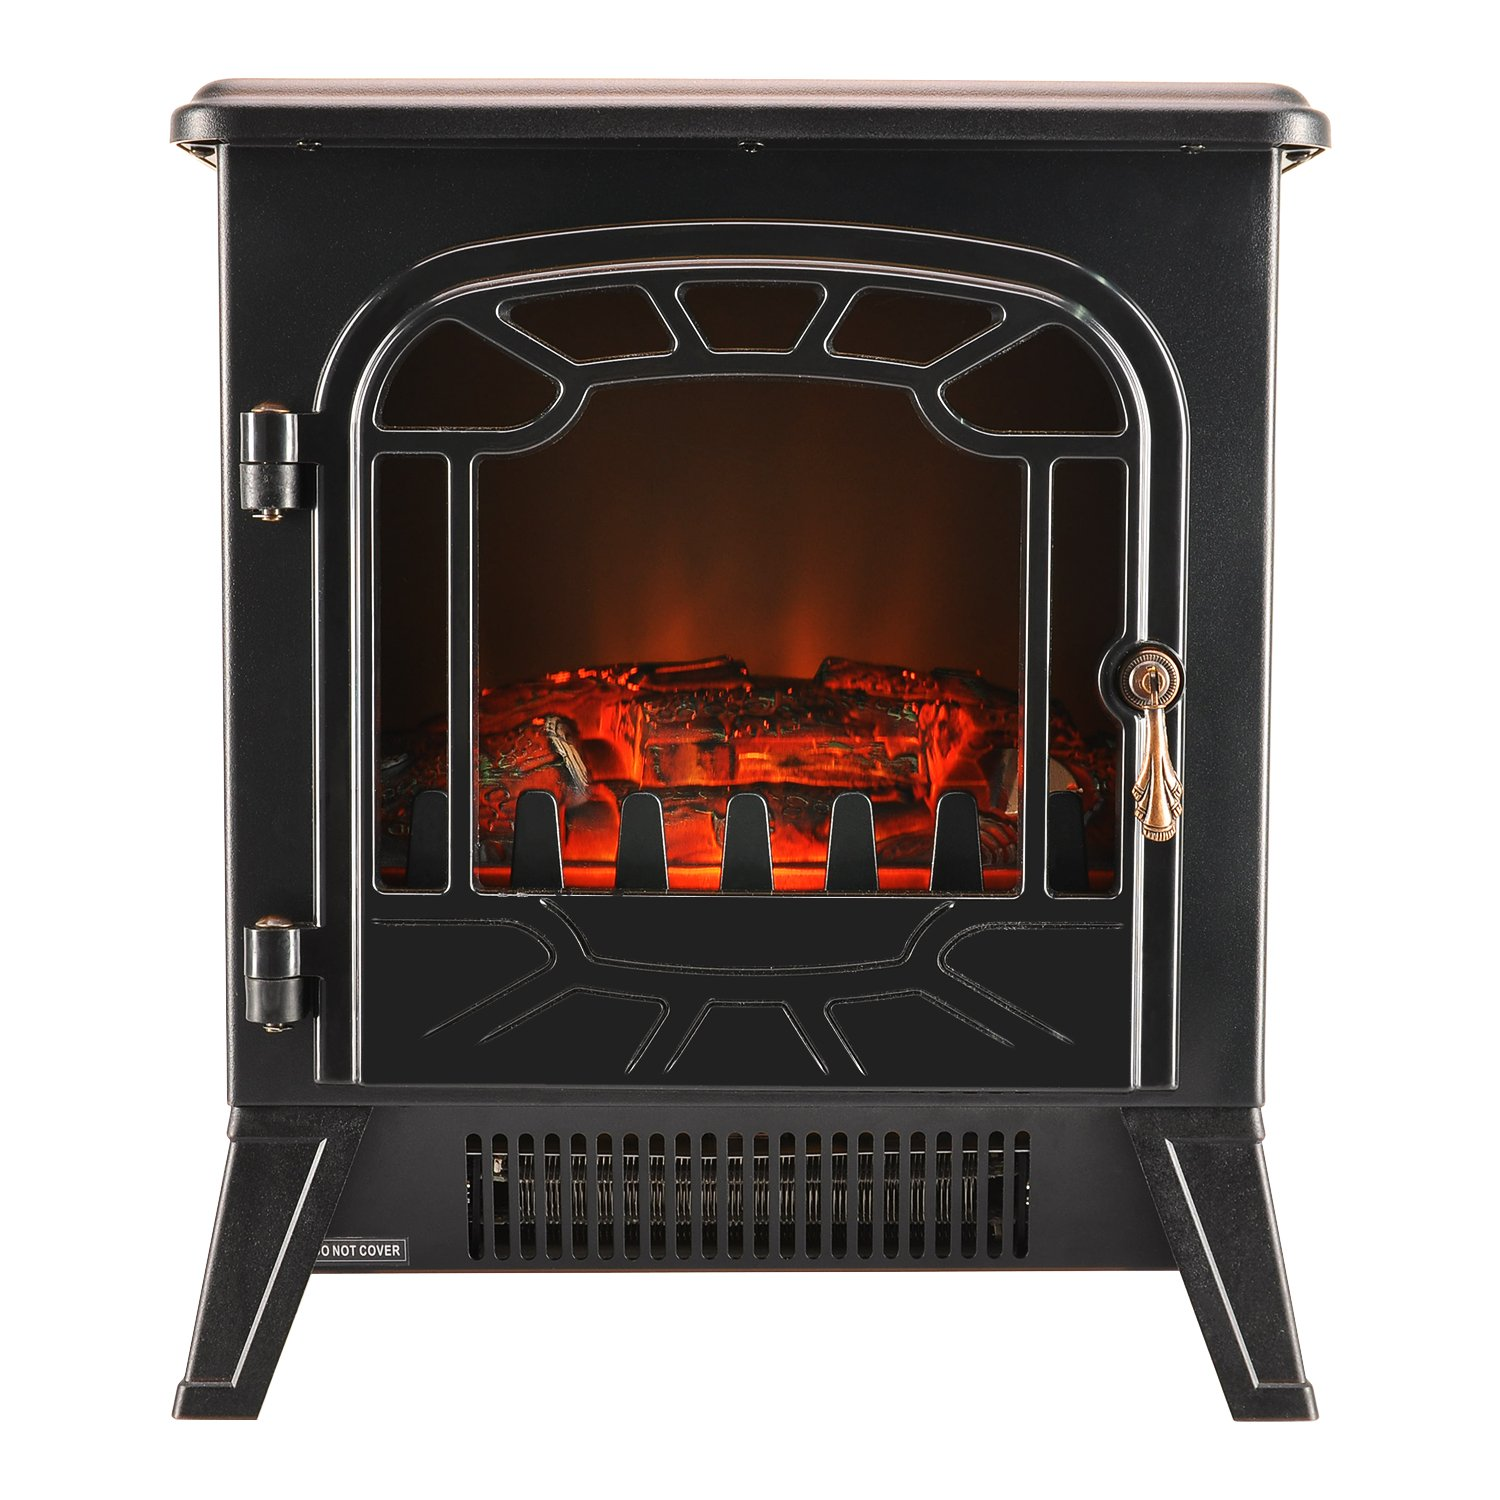 Electric Fireplace, BPS Freestanding Indoor Heating Stove Electric Fireplace with Vivid Log Burning Flame Effect and Adjust Thermostat - 1850W